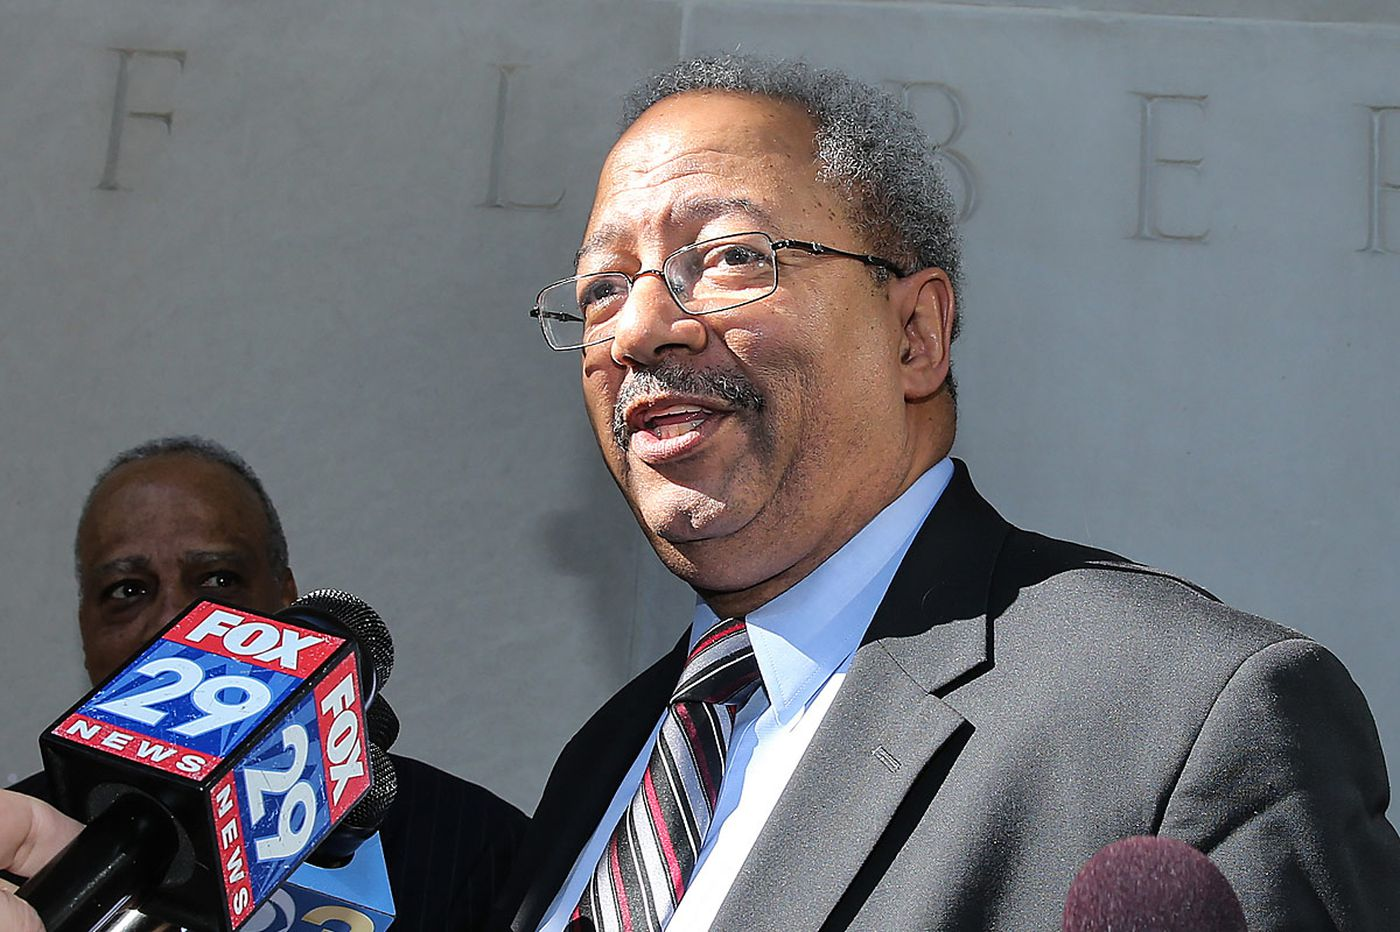 After monthlong trial, jury deliberations underway in Fattah corruption case